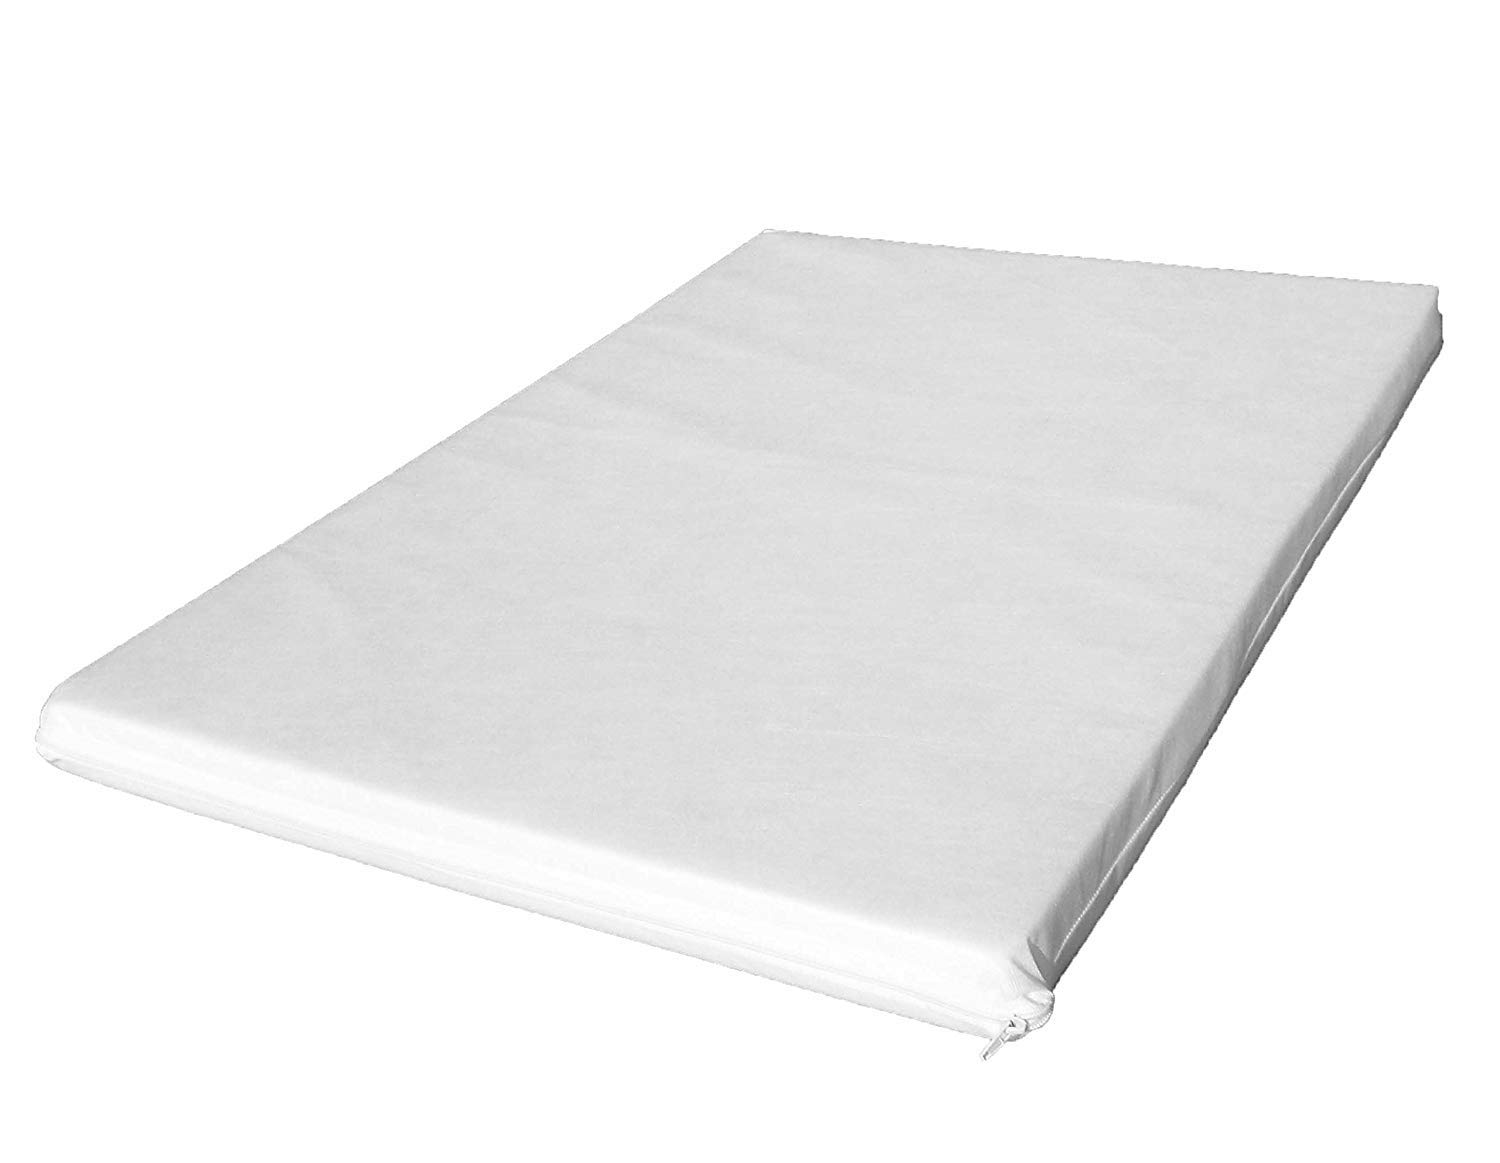 Crystal 95 x 65 x 5CM Thick Travel Cot Mattress - Will Fit Mamas & Papas Classic Travel Cot As Well As Other Makes: Reversible: British Made with High Grade Density Foam CMHR28 Rainbow